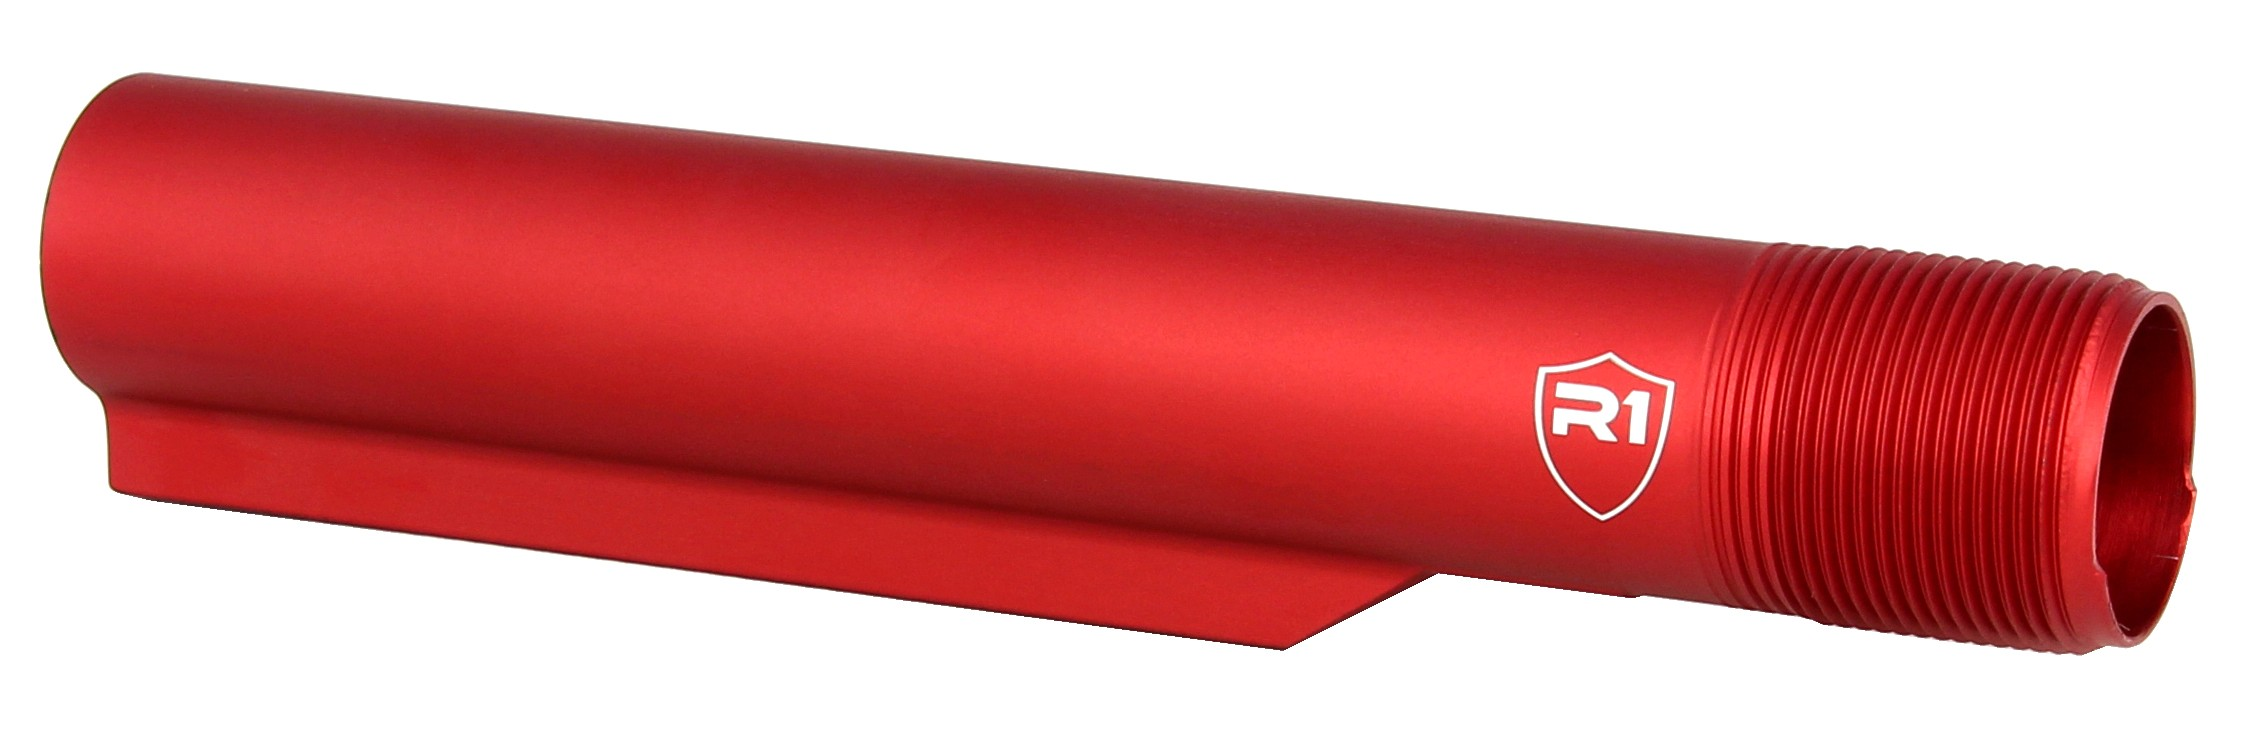 R1 Tactical Red Anodized Mil-Spec Buffer Tube Extension (R1 Shield) - Redcon1 Tactical